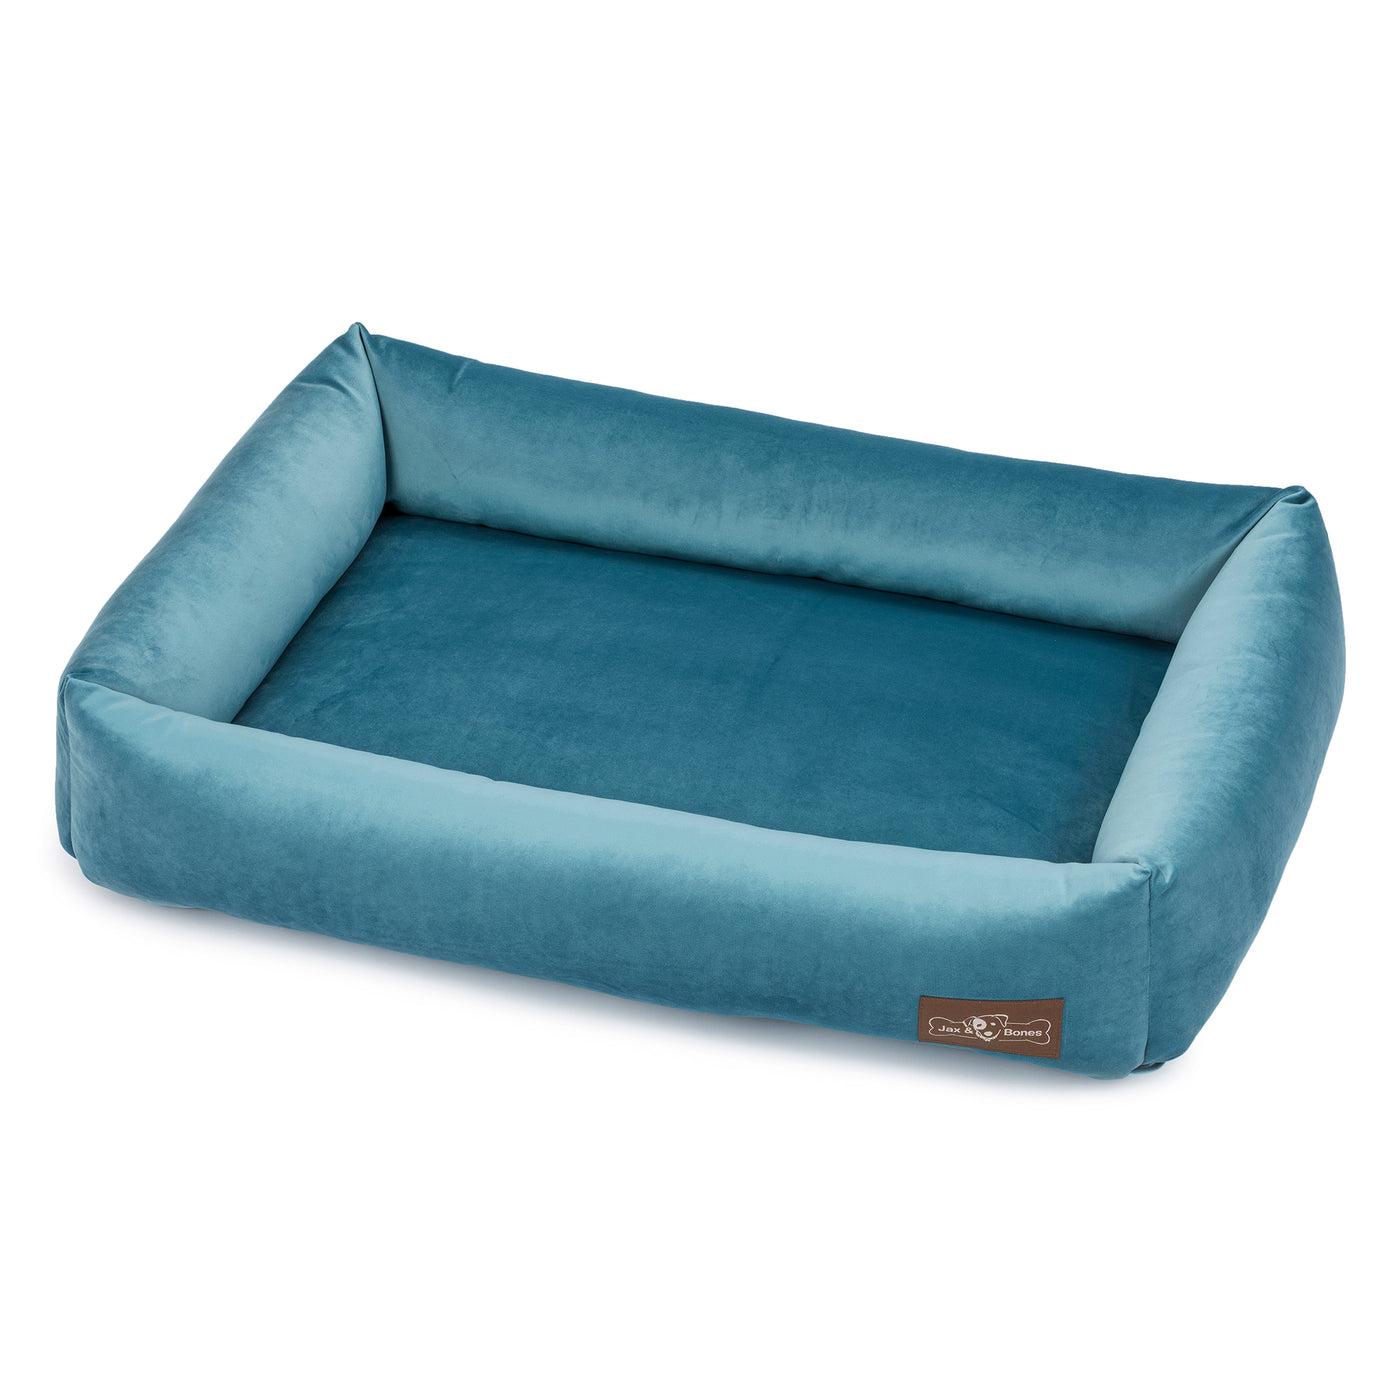 Memory Foam Vintage Jewel Cuddler Bed